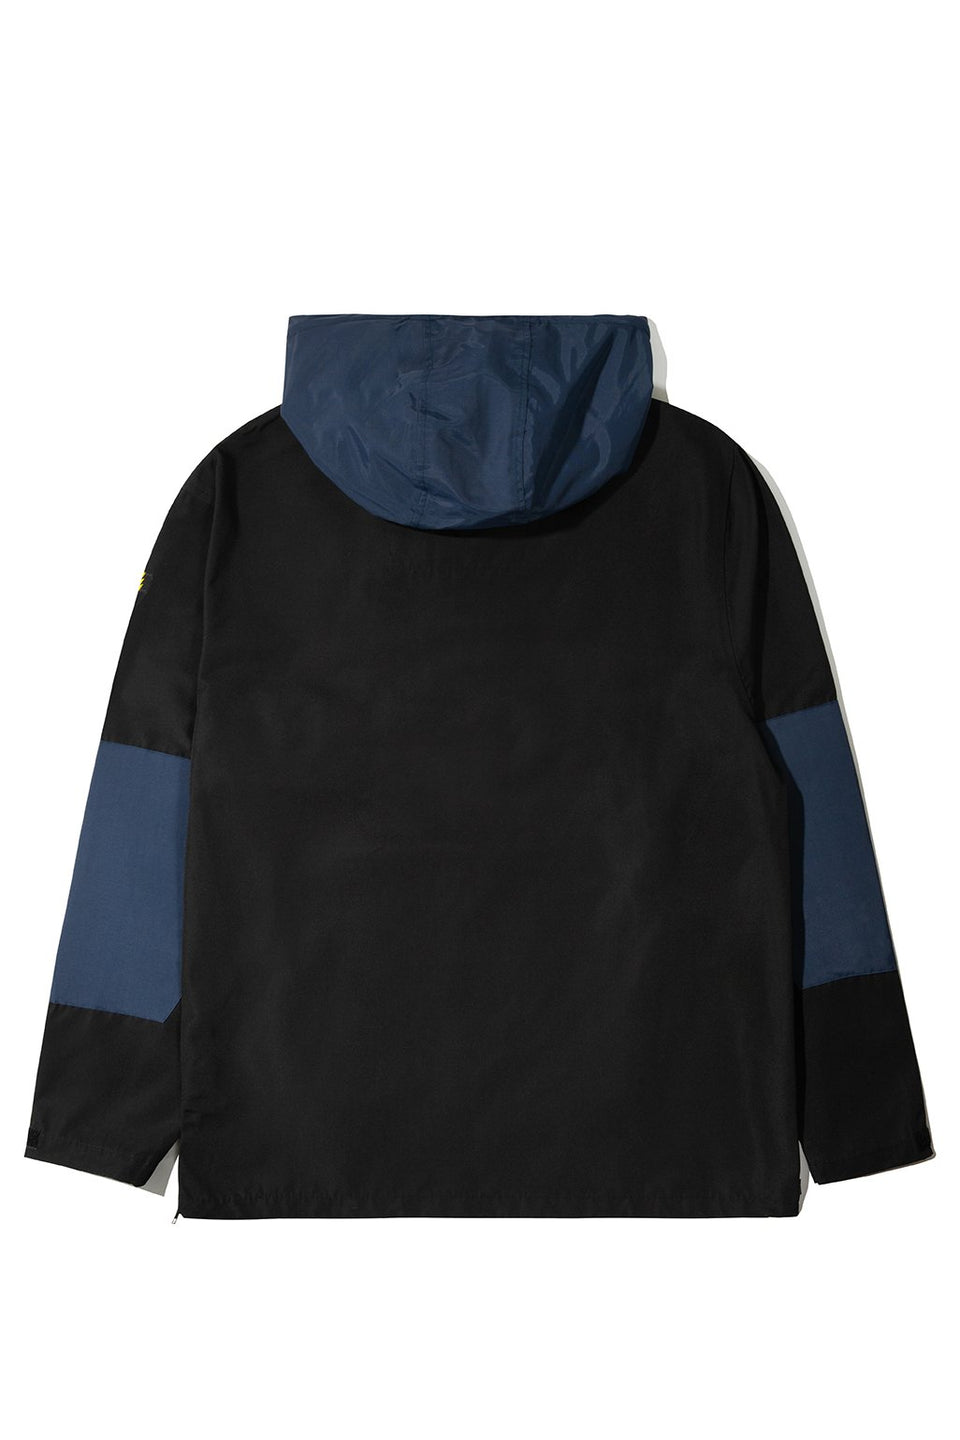 The Hundreds Ranger Anorak TOPS Black